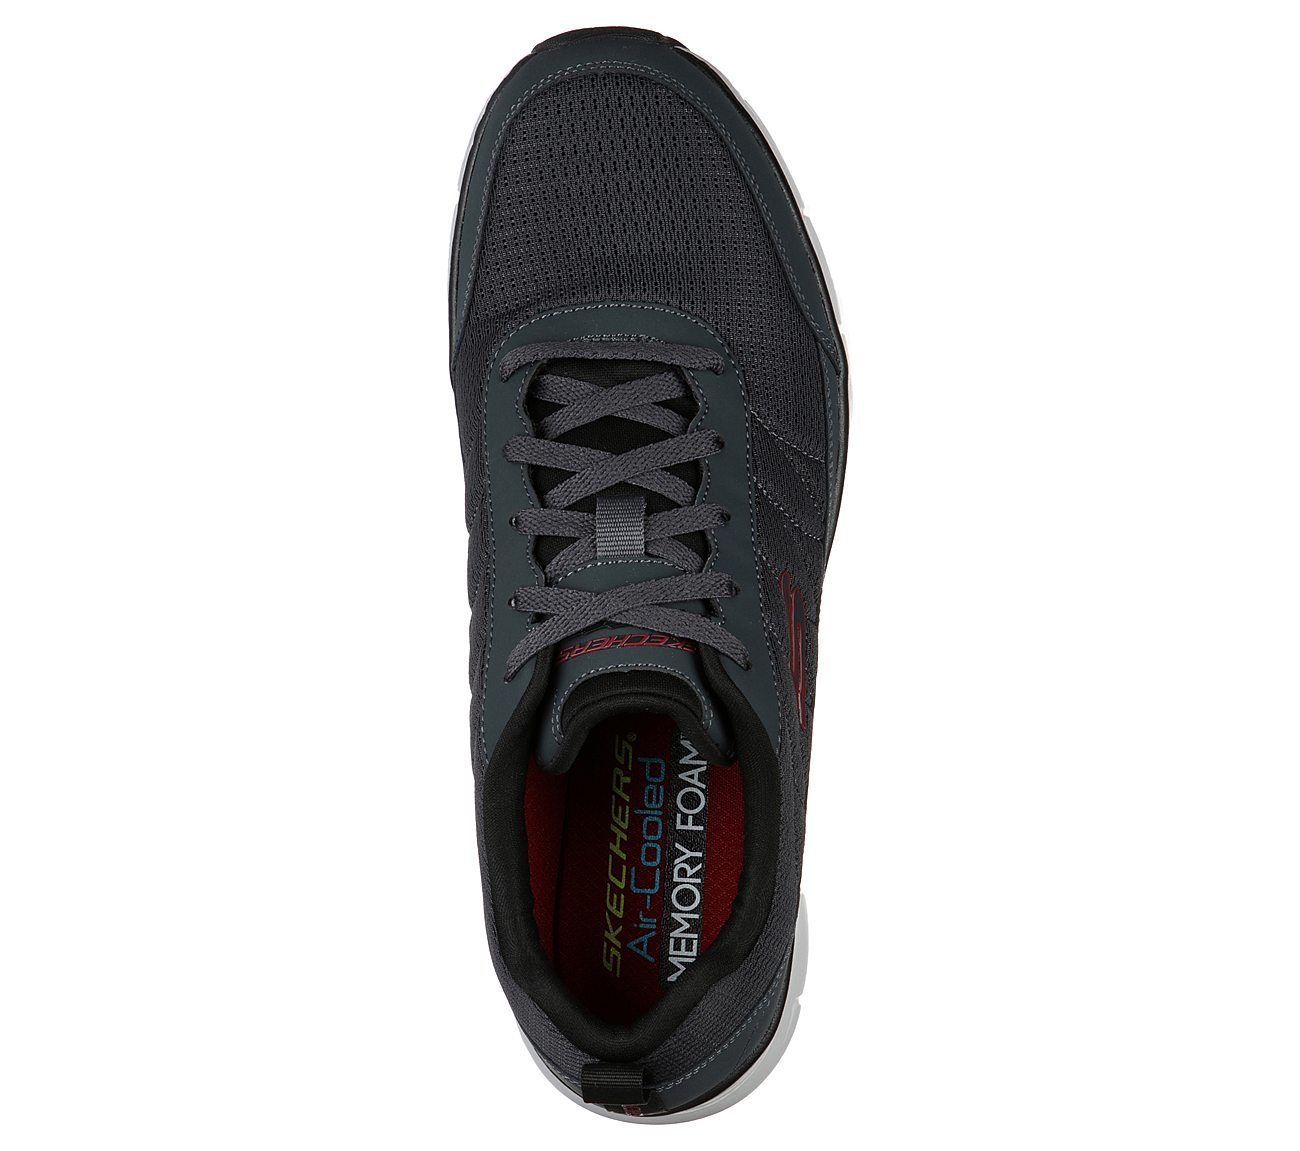 Details zu Skechers Synergy 3.0 Trainers 52584 Mens Leather Mesh Athletic Training Shoes